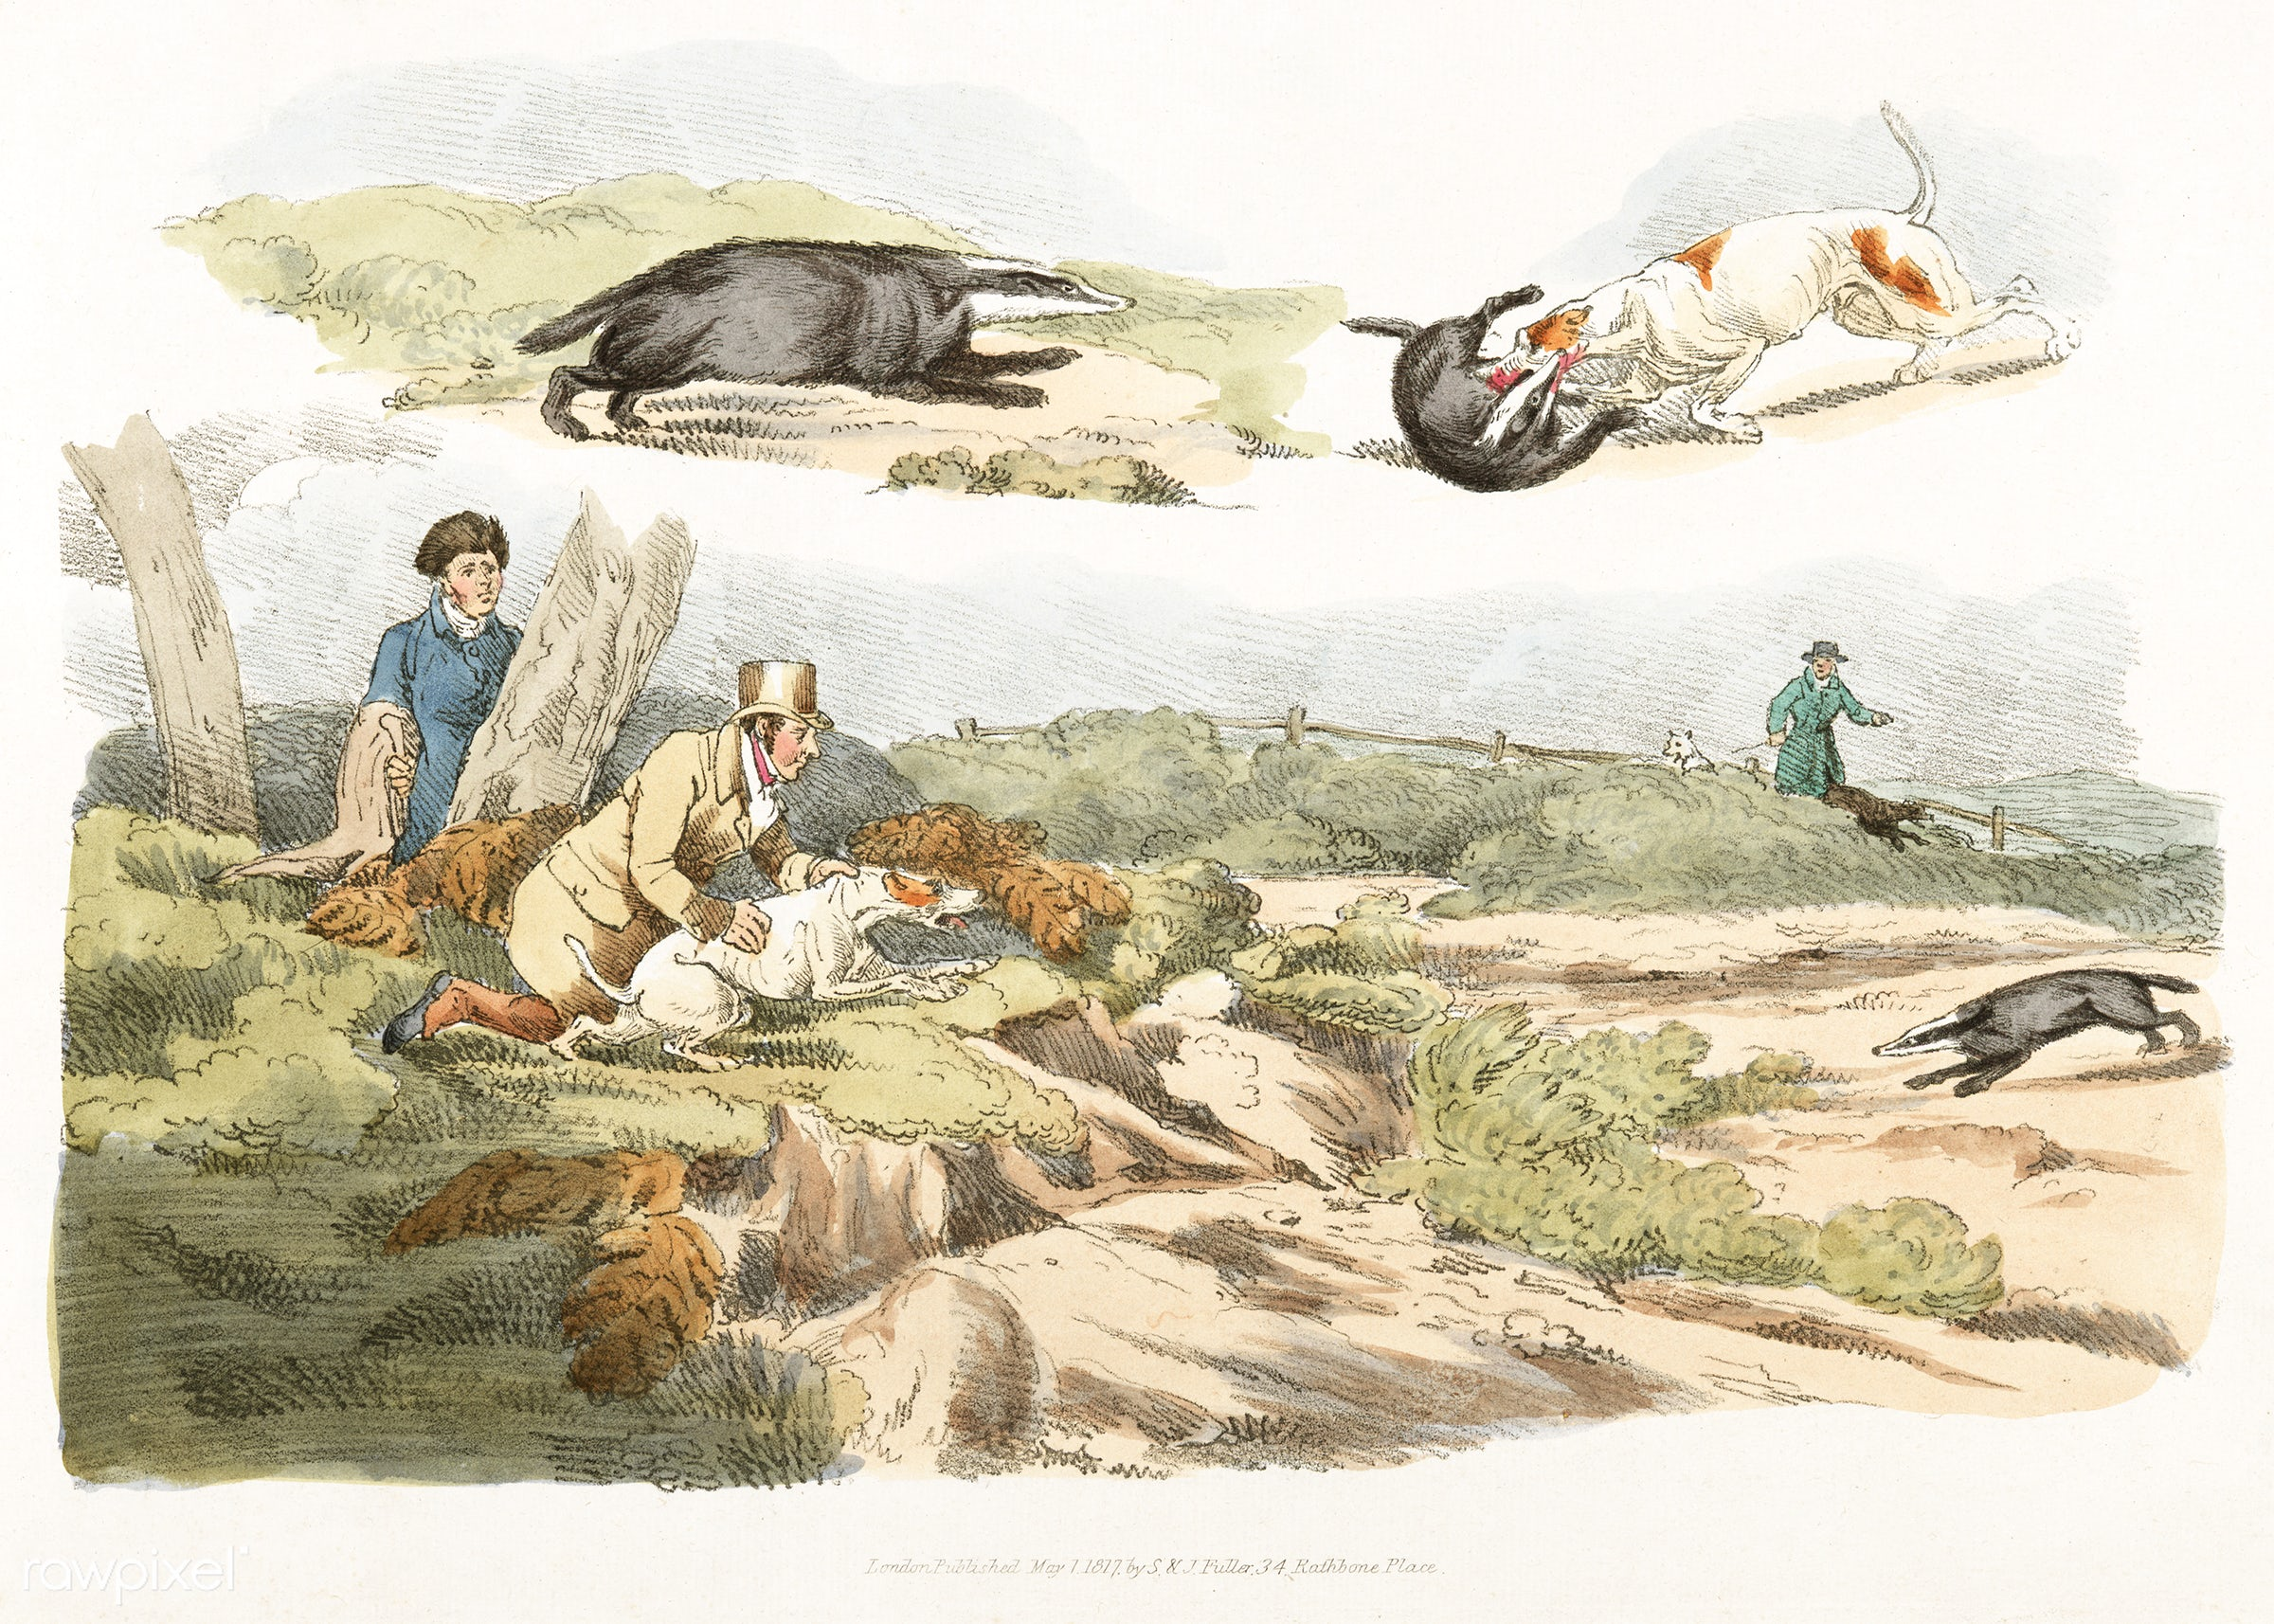 Illustration of badger hunting: dogs chasing and attacking badgers from Sporting Sketches (1817-1818) by Henry Alken (1784-...